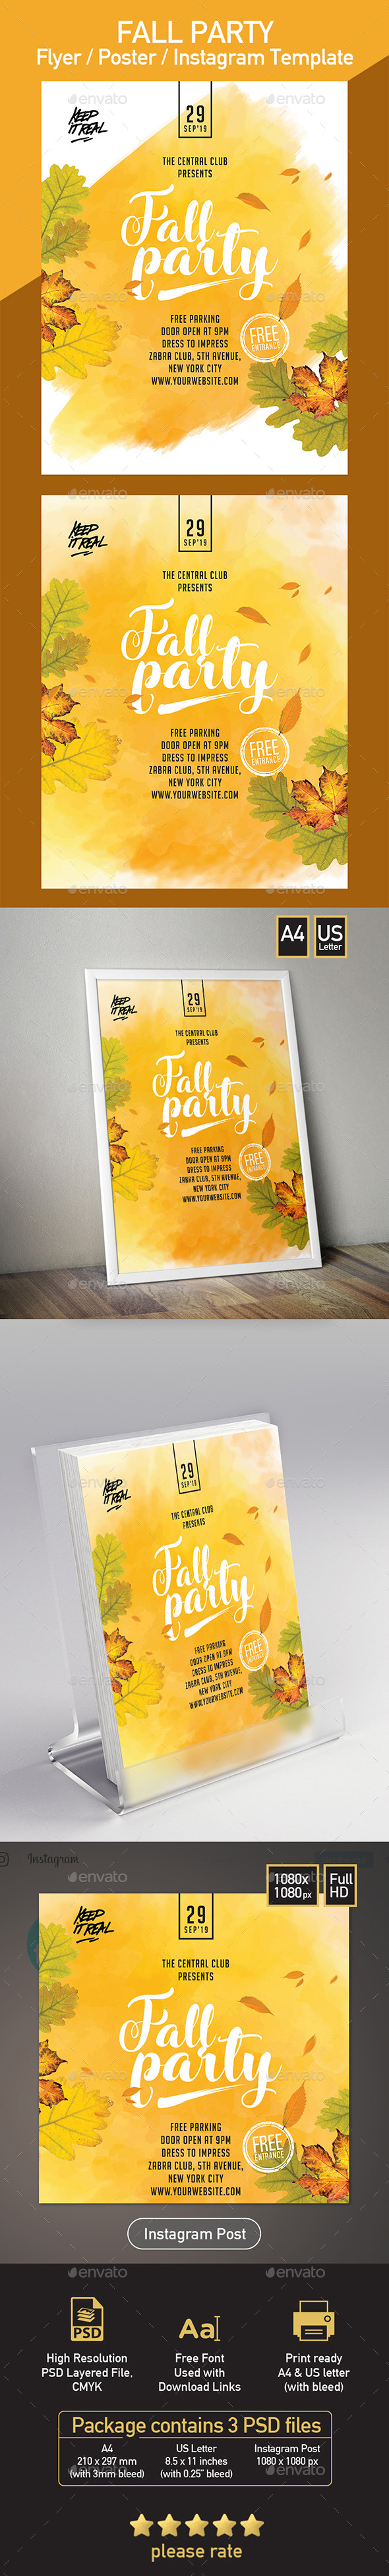 Autumn Beer Festival Flyer - Set of 3 Templates - Events Flyers